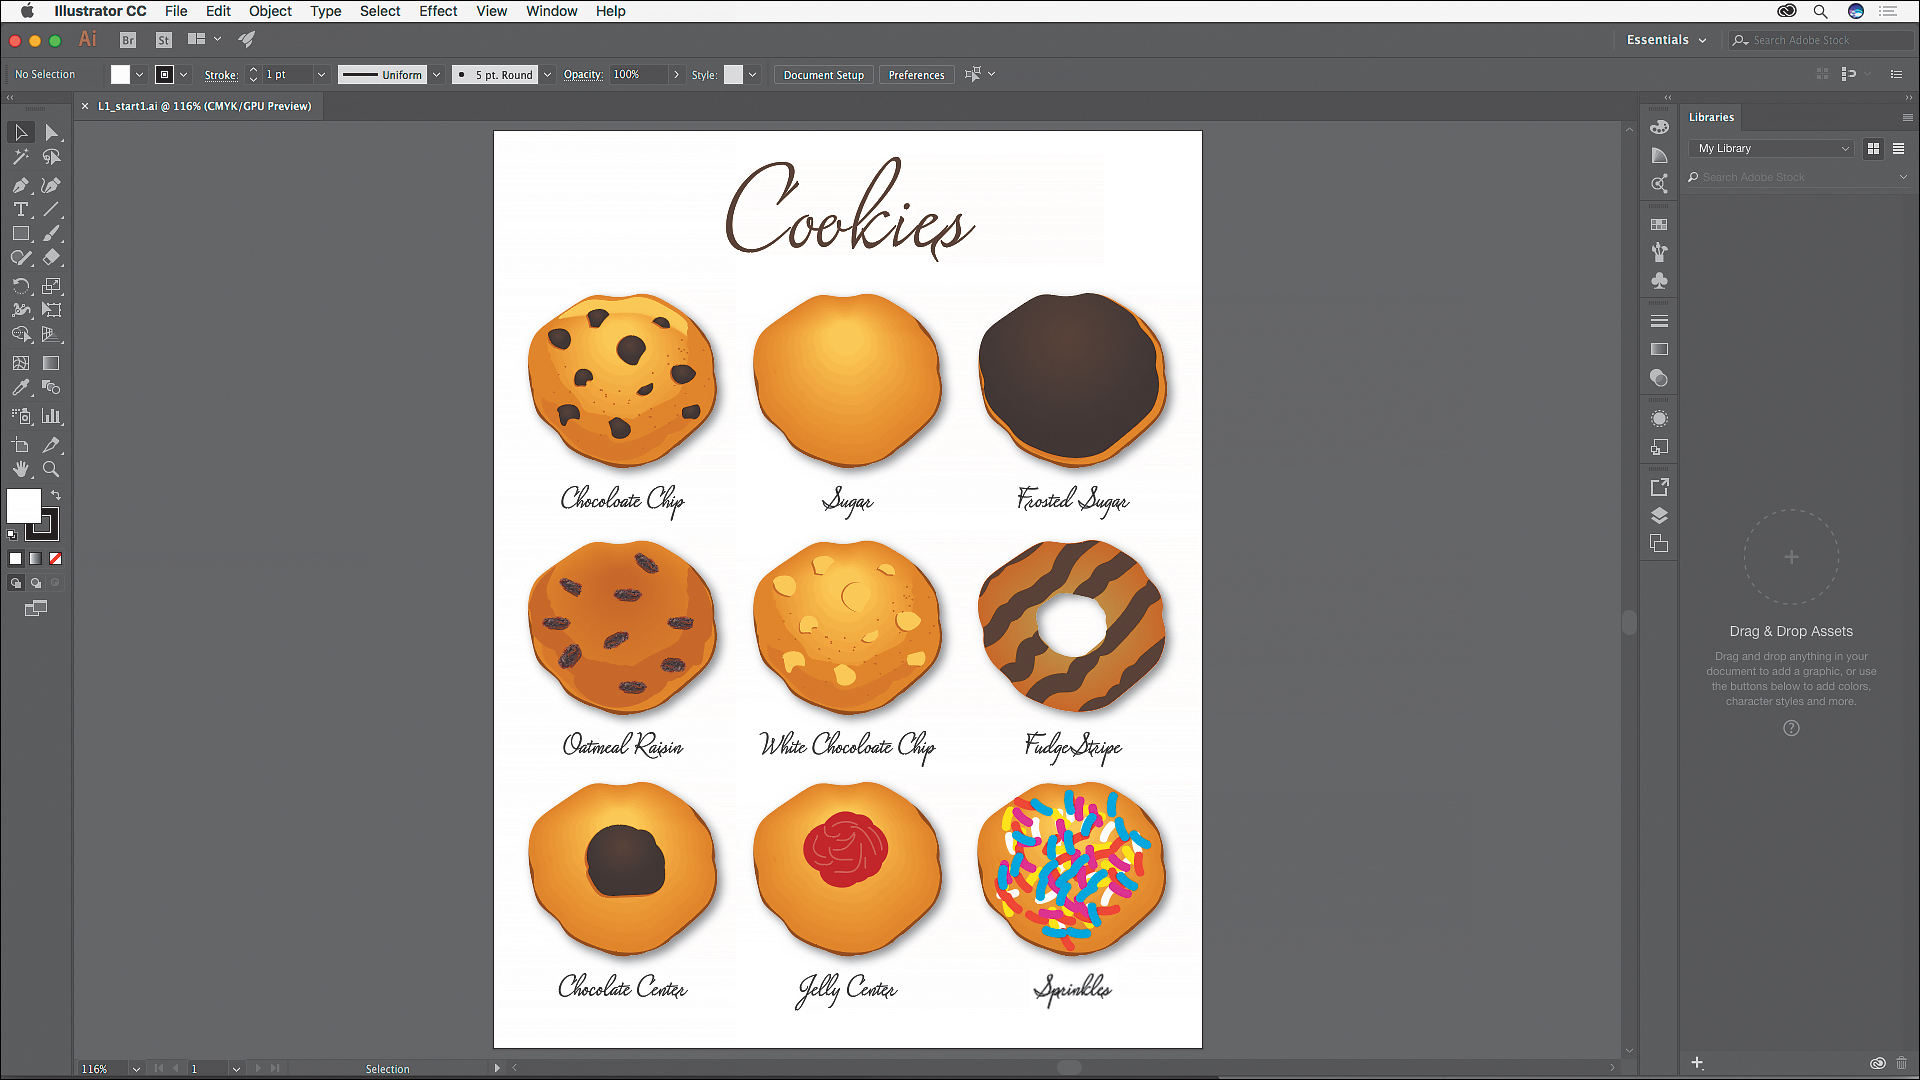 Adobe Illustrator CC 2017 cookies editing